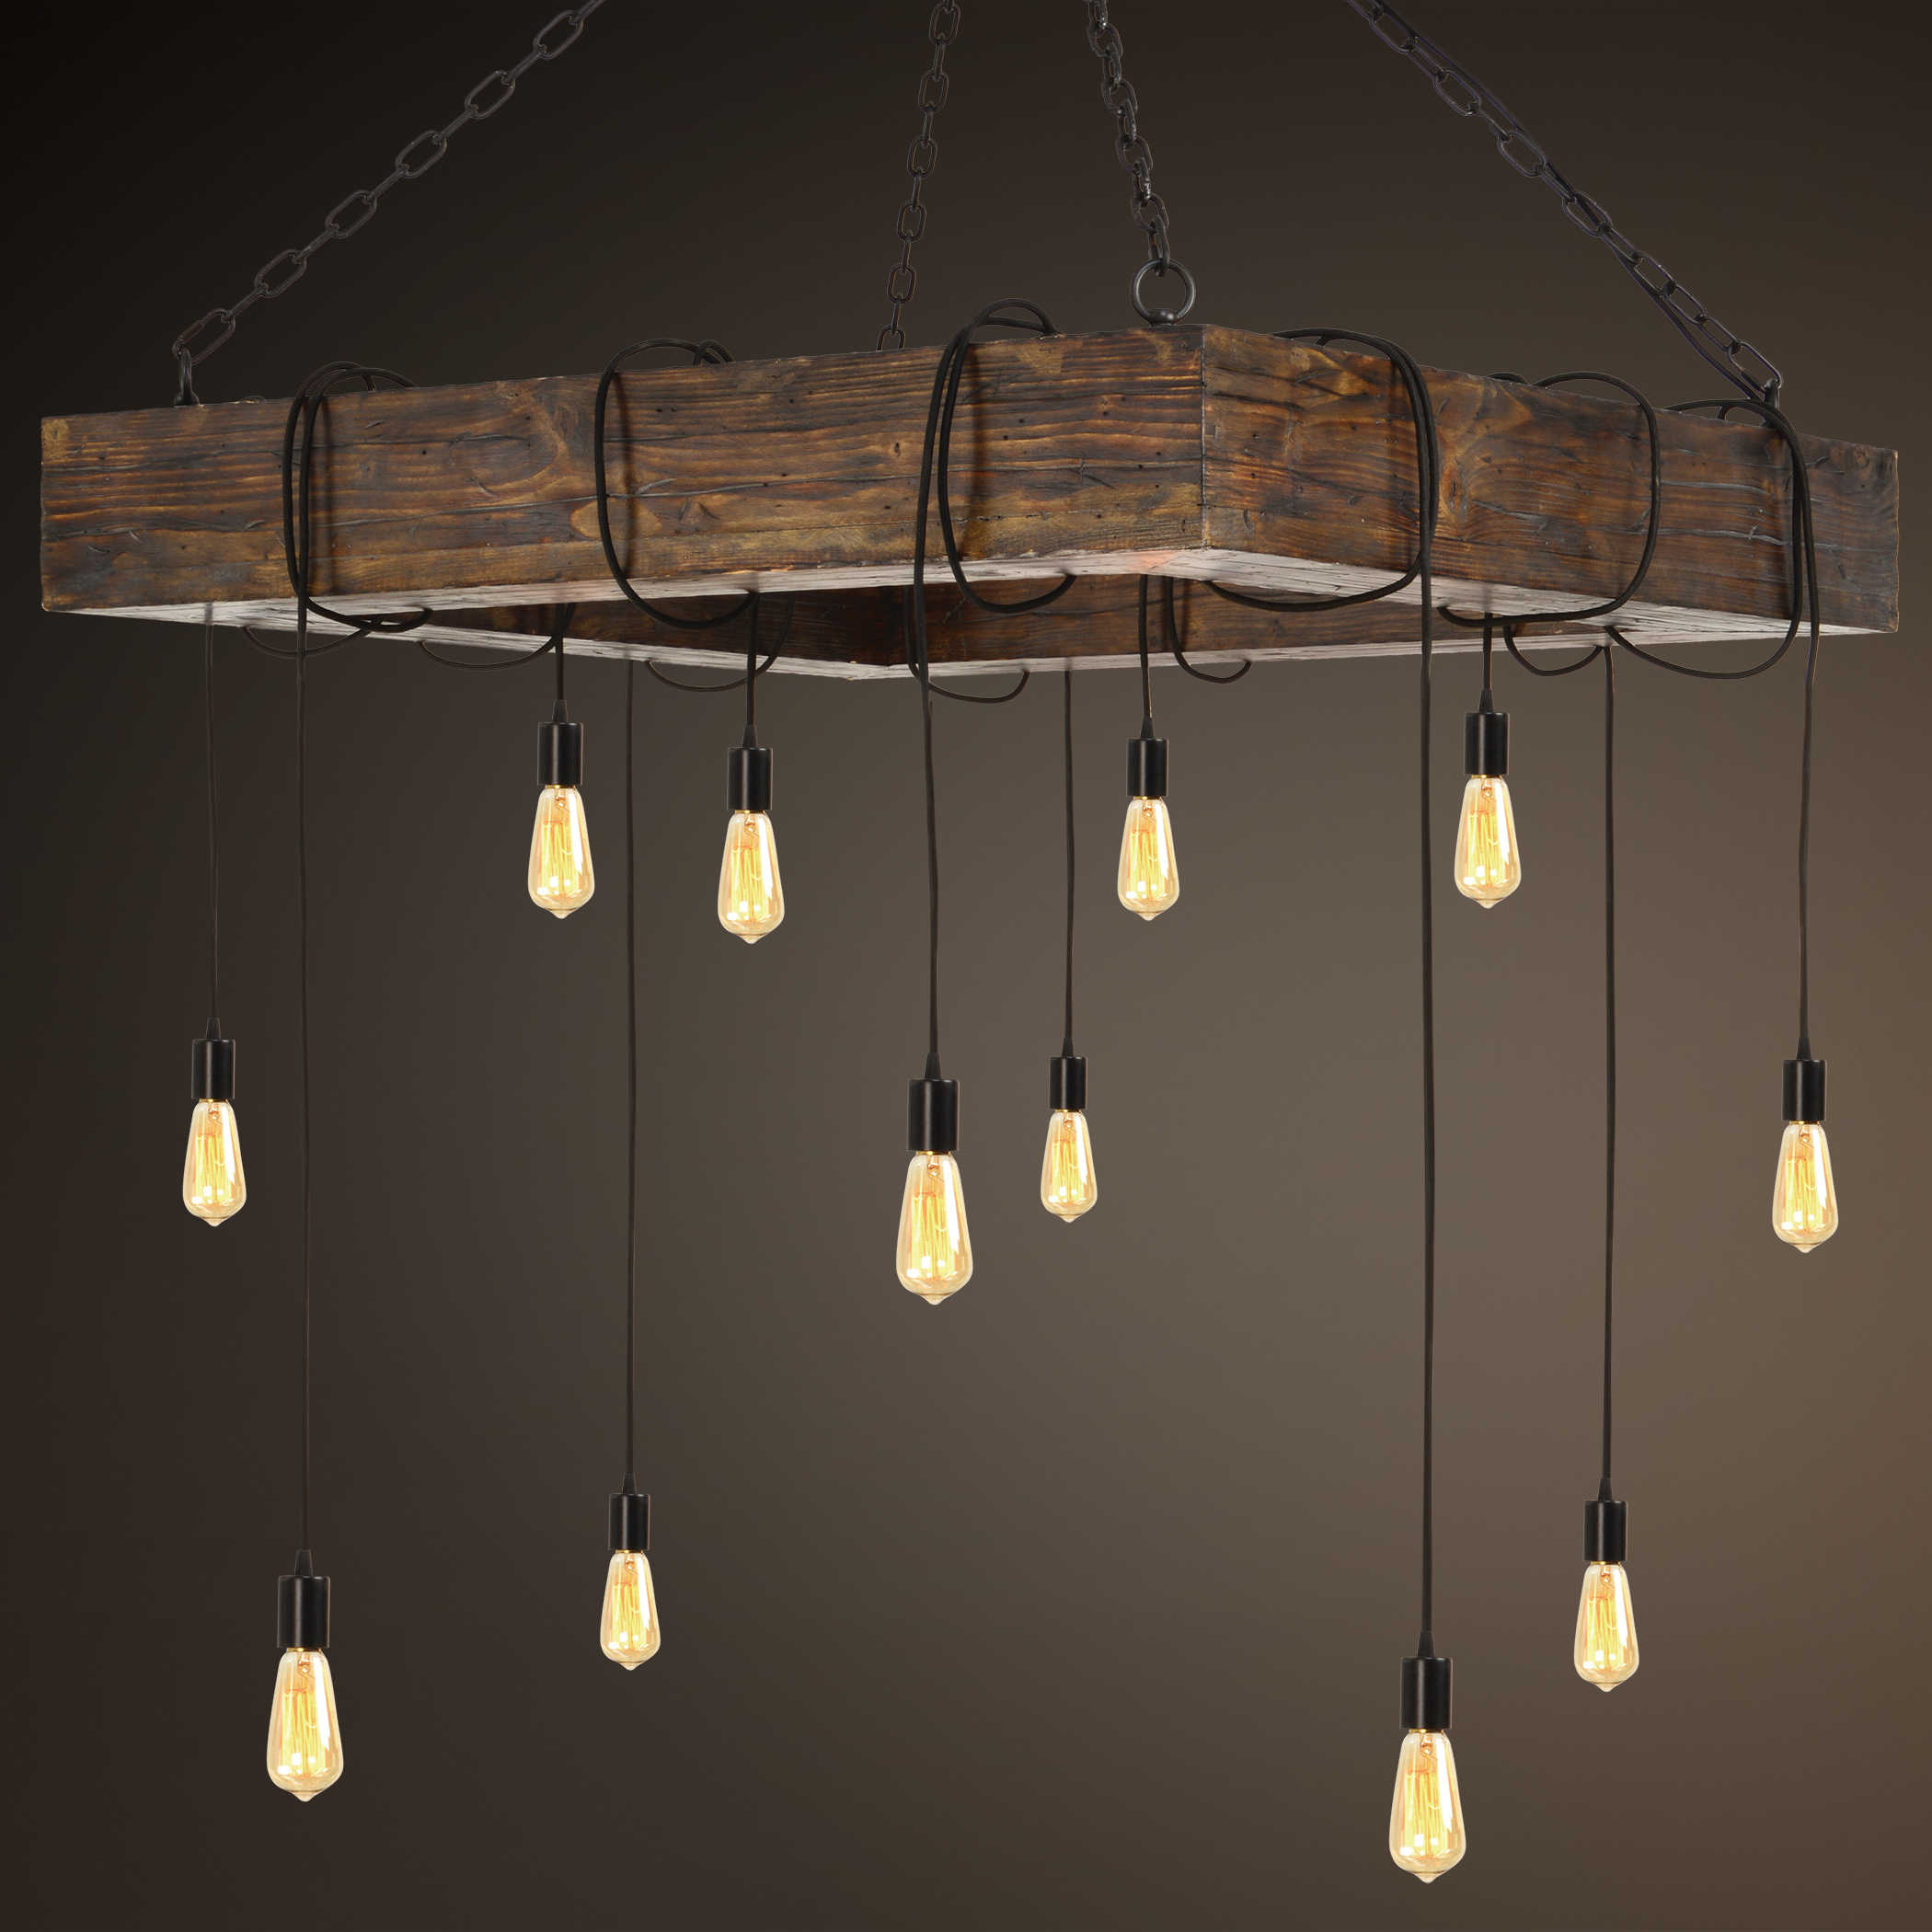 Want to learn more about this or find a similar product for your own room design contact us we are familiar with hundreds of lighting fixtures that will